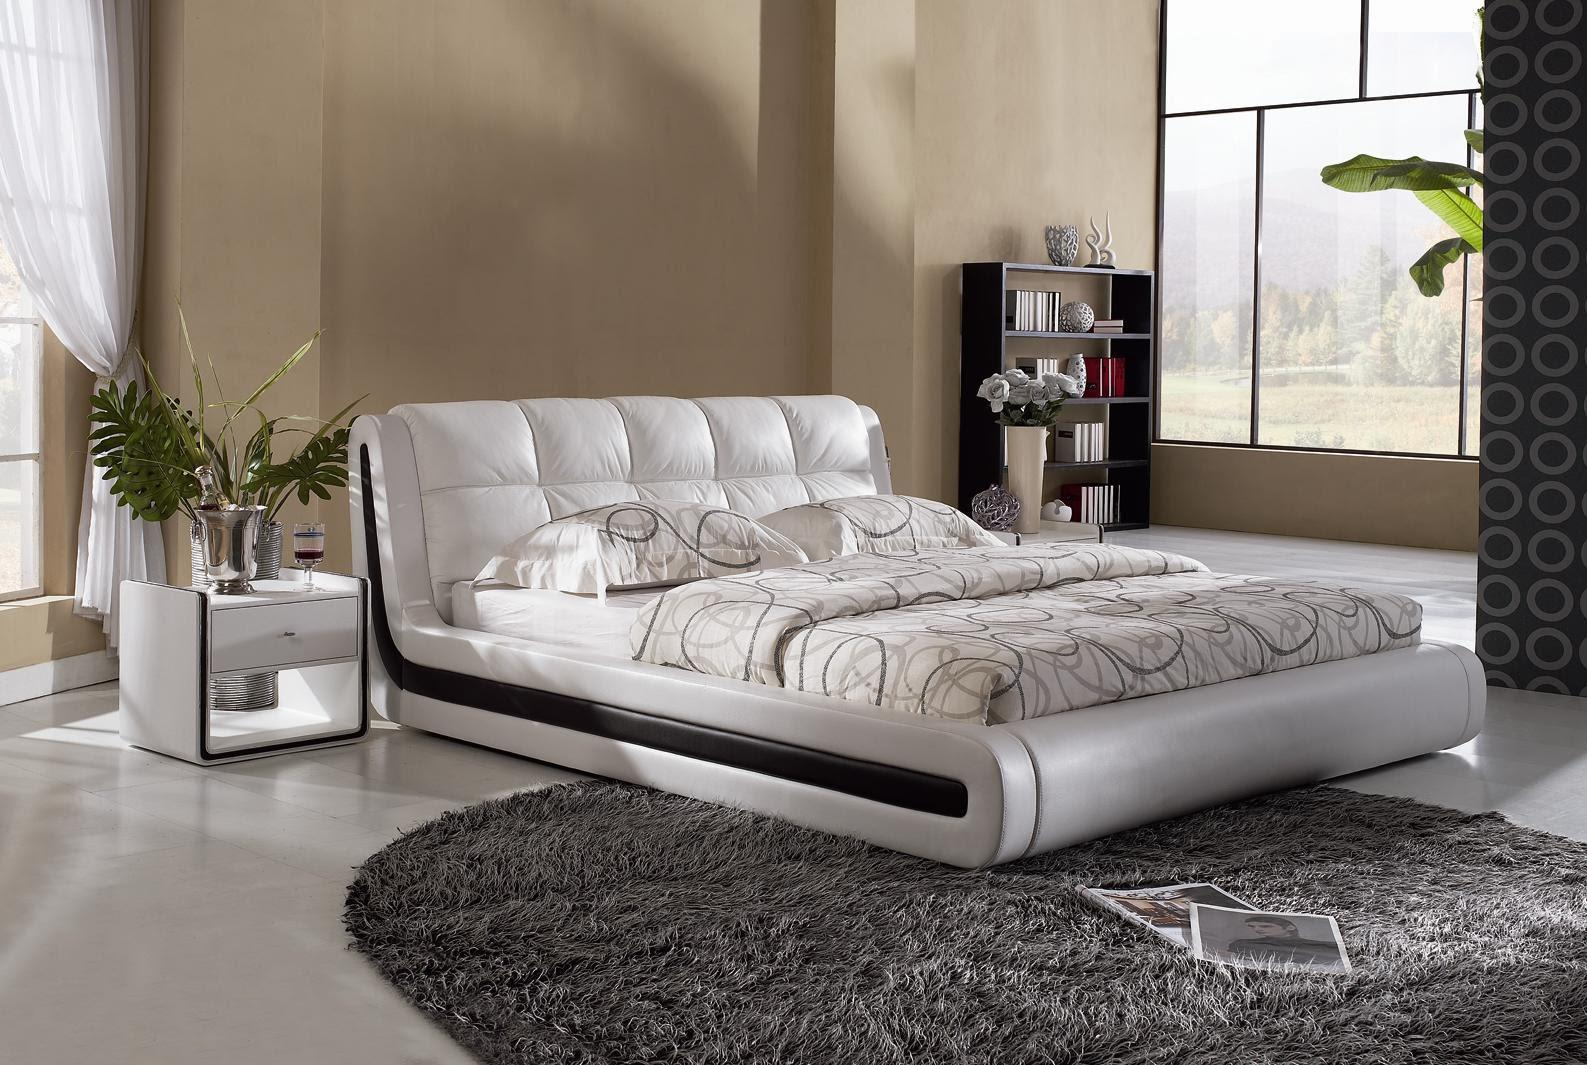 Image of: Modern Bed Designs